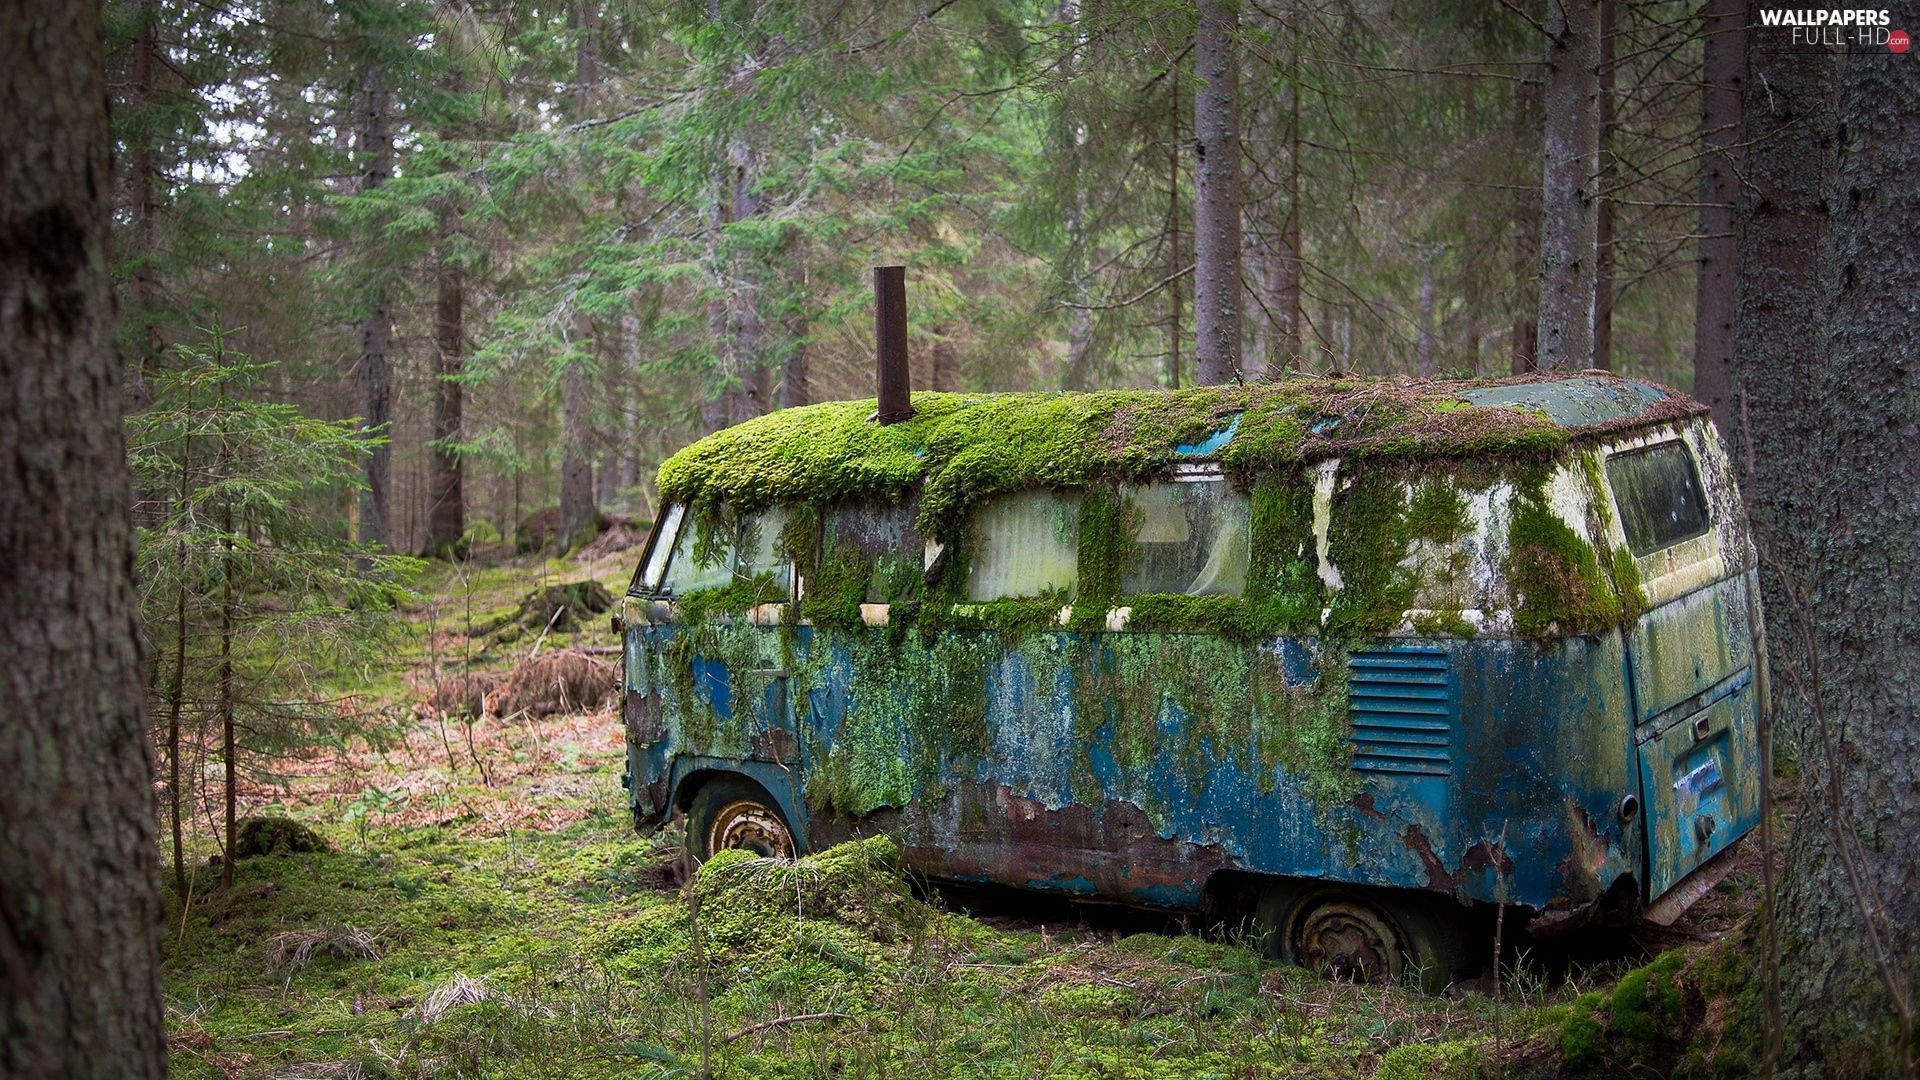 Moss, forest, rusty, Automobile